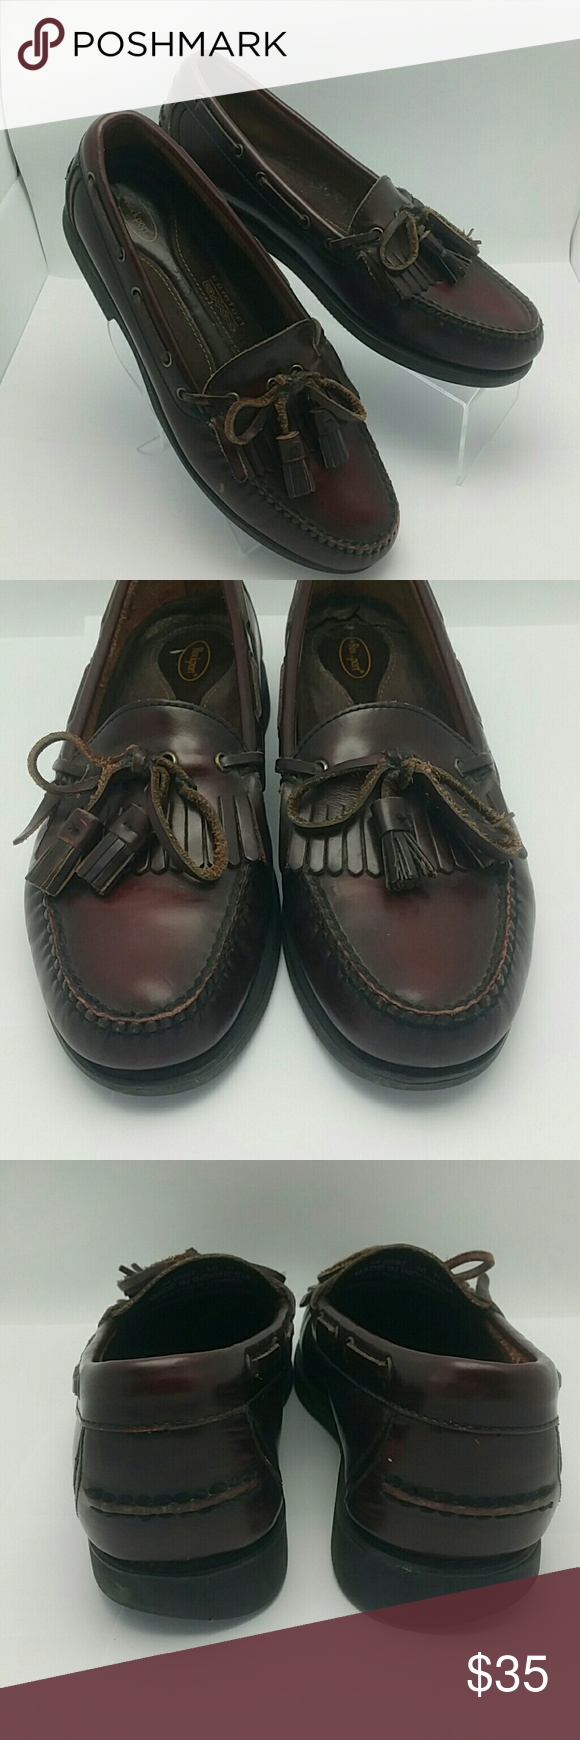 Rockport Comfort DMX Shoes. Burgundy Nice clean shoes, heels show some wear Rockport  Shoes